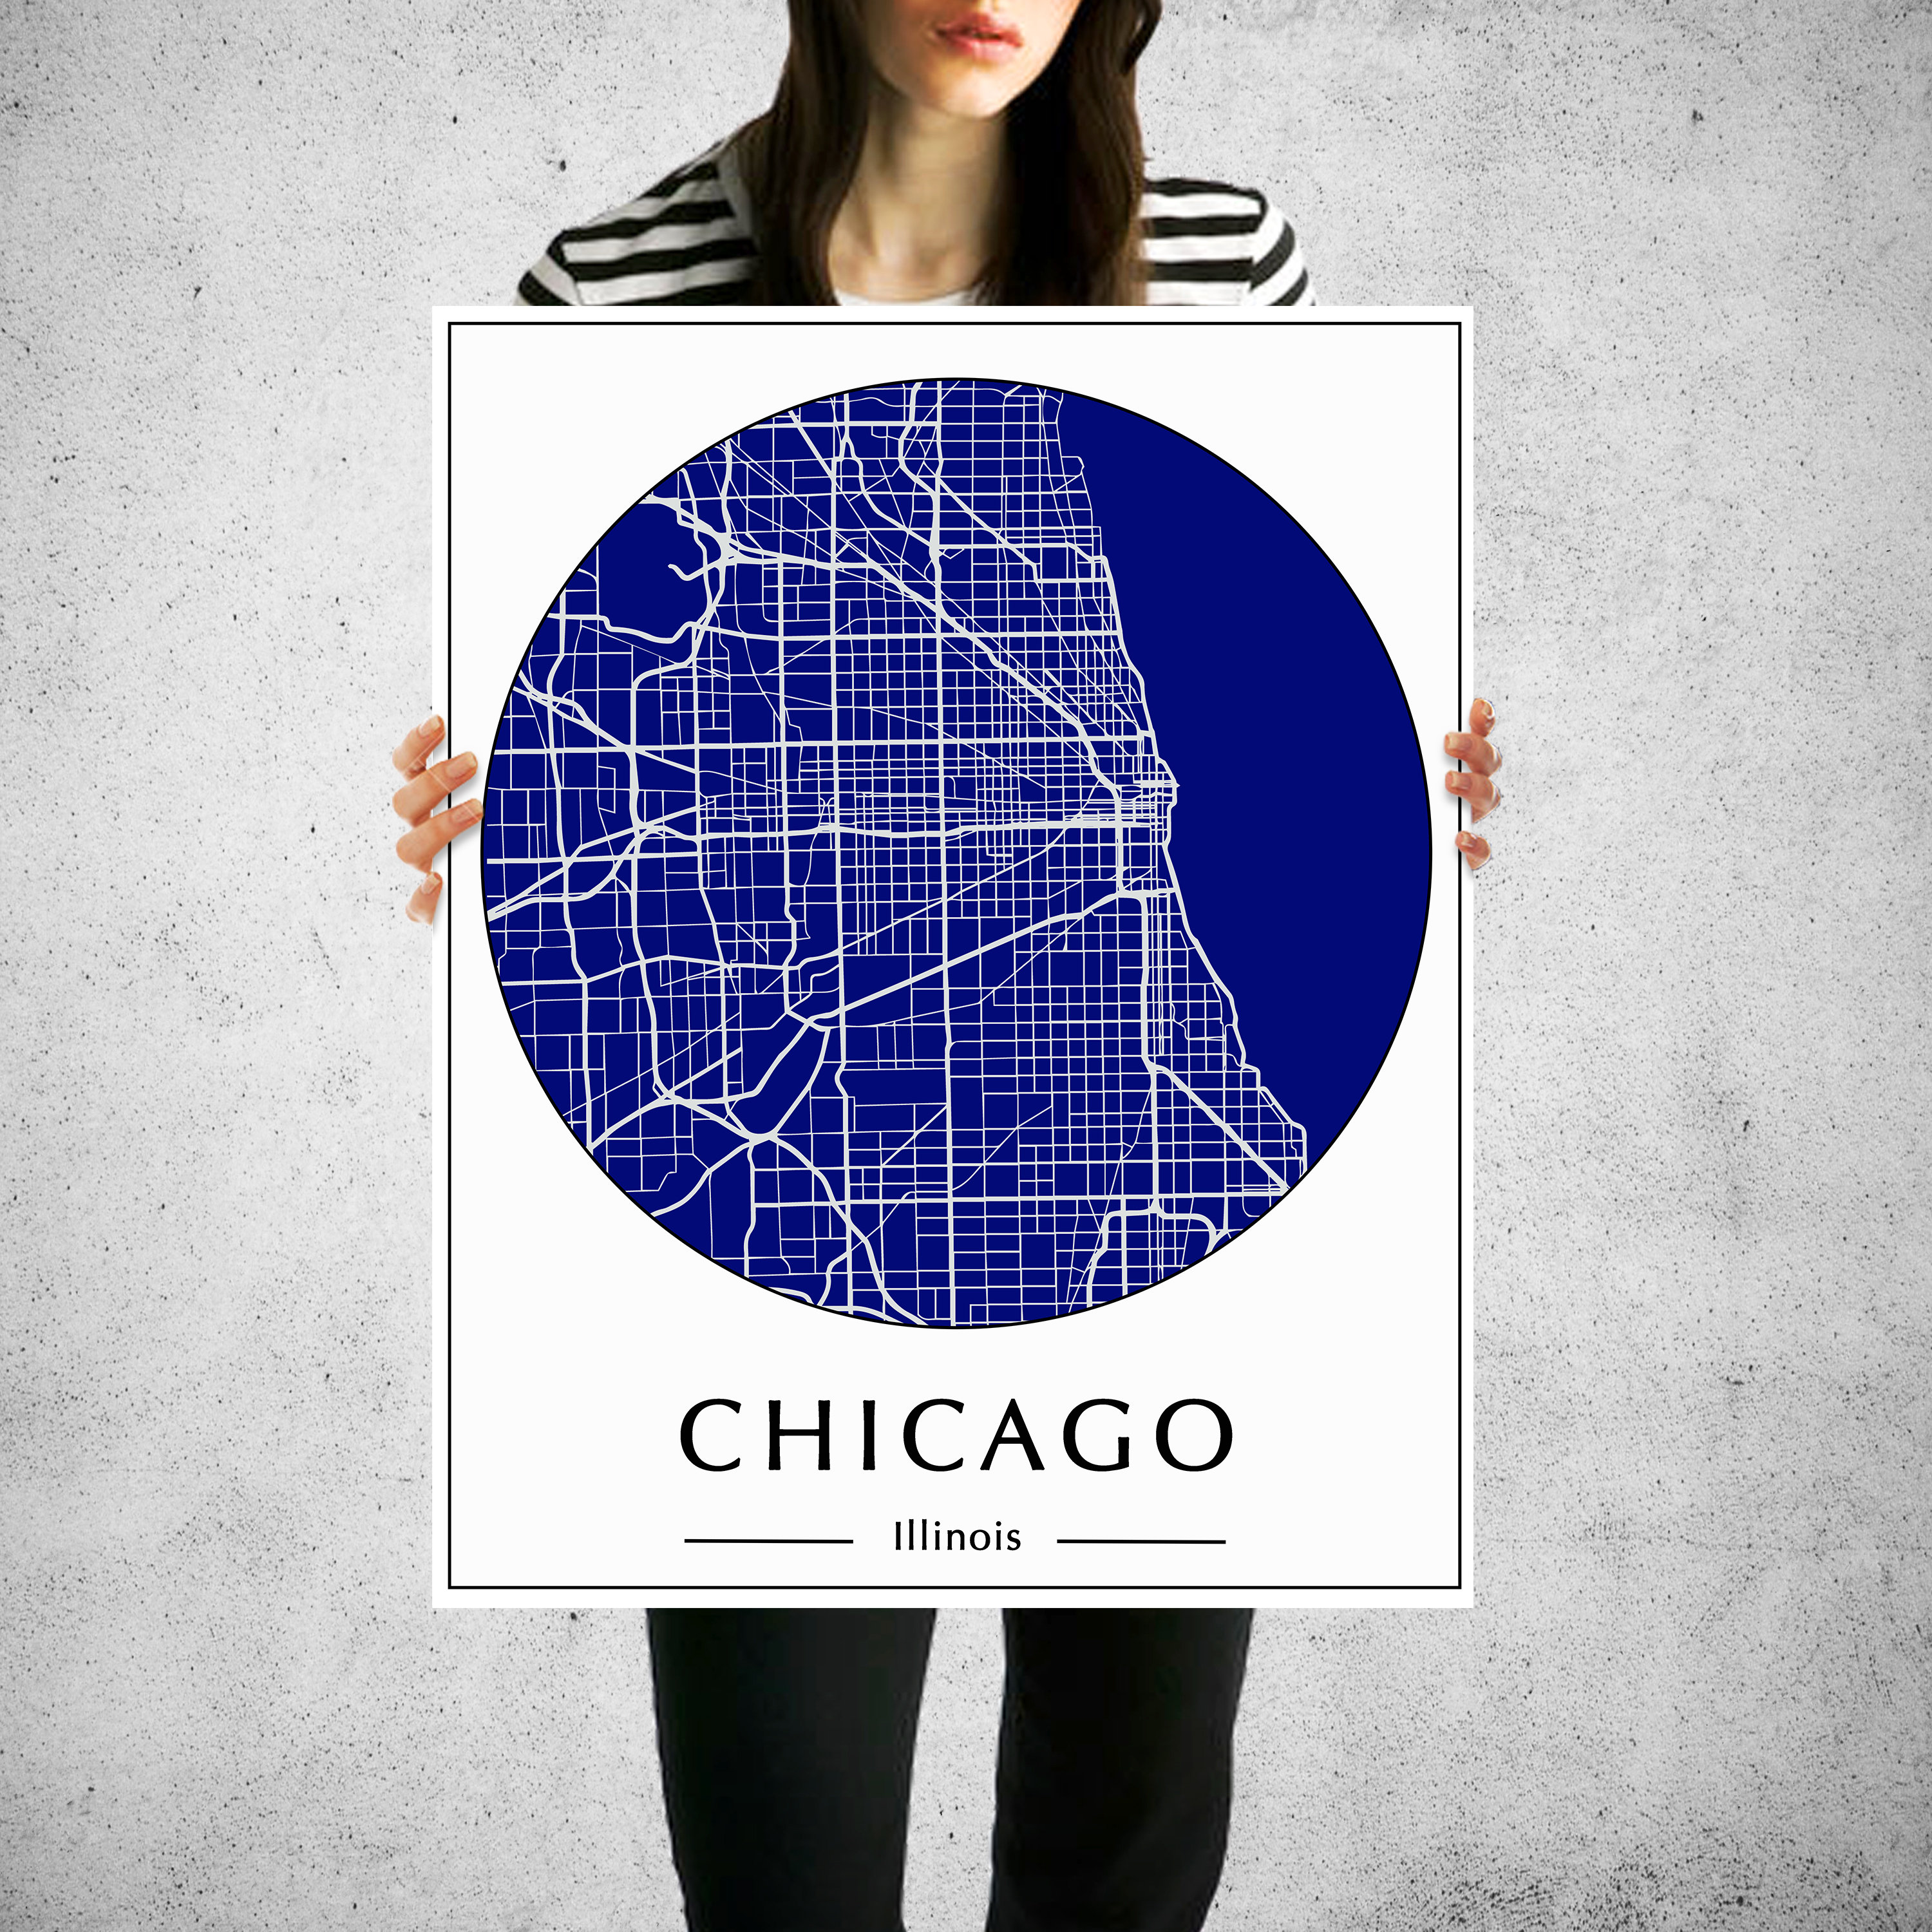 Chicago City Map Art, Maps Of Cities, Chicago City Posters